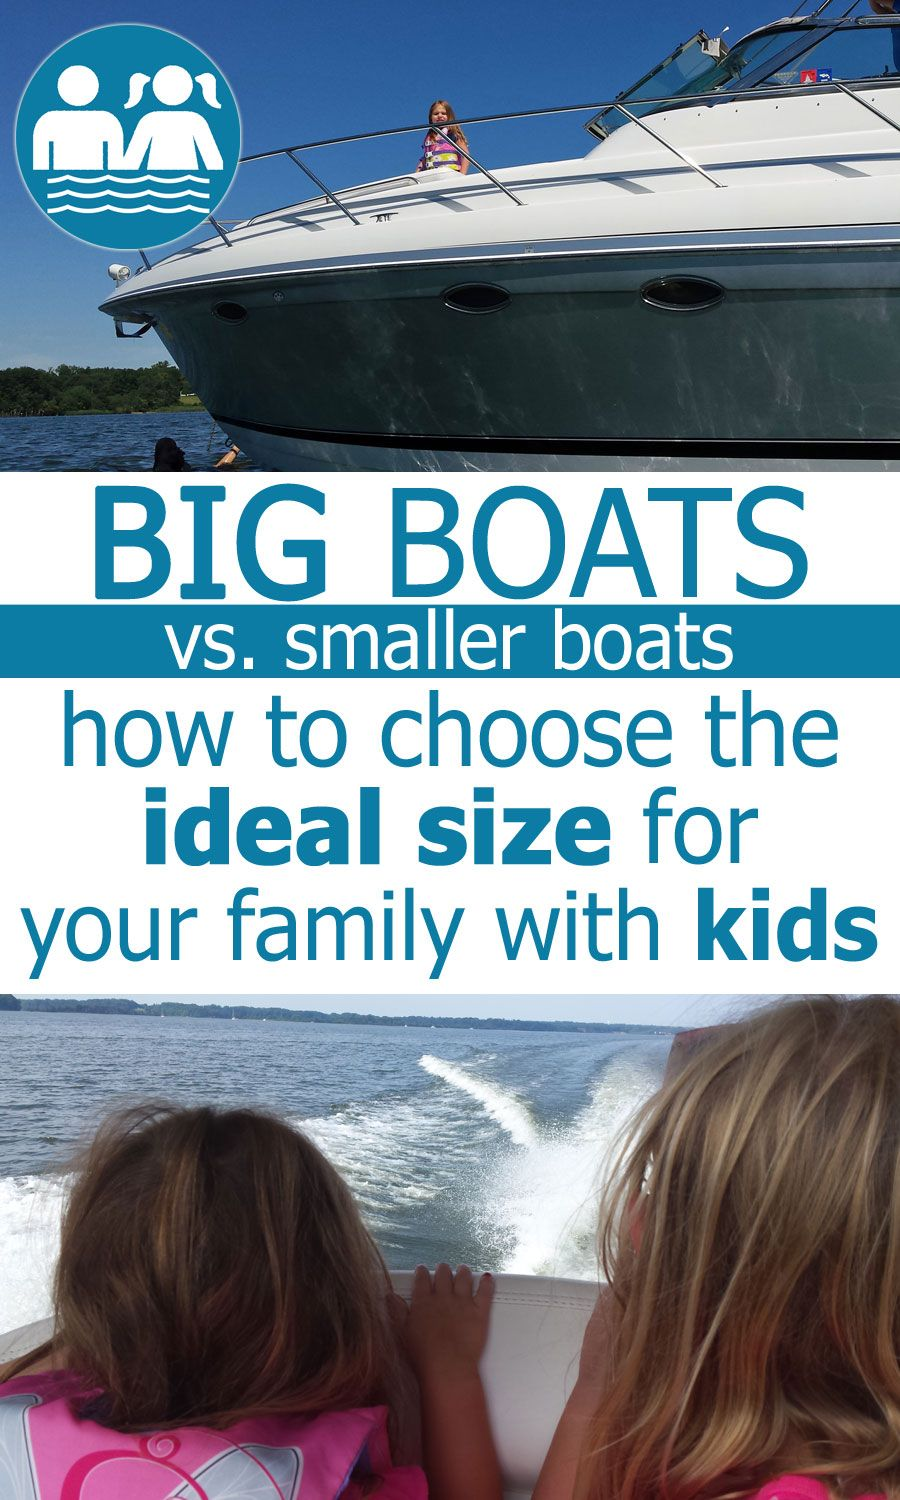 Is a Big Boat or Smaller Boat Better with Kids? | Buying a Boat